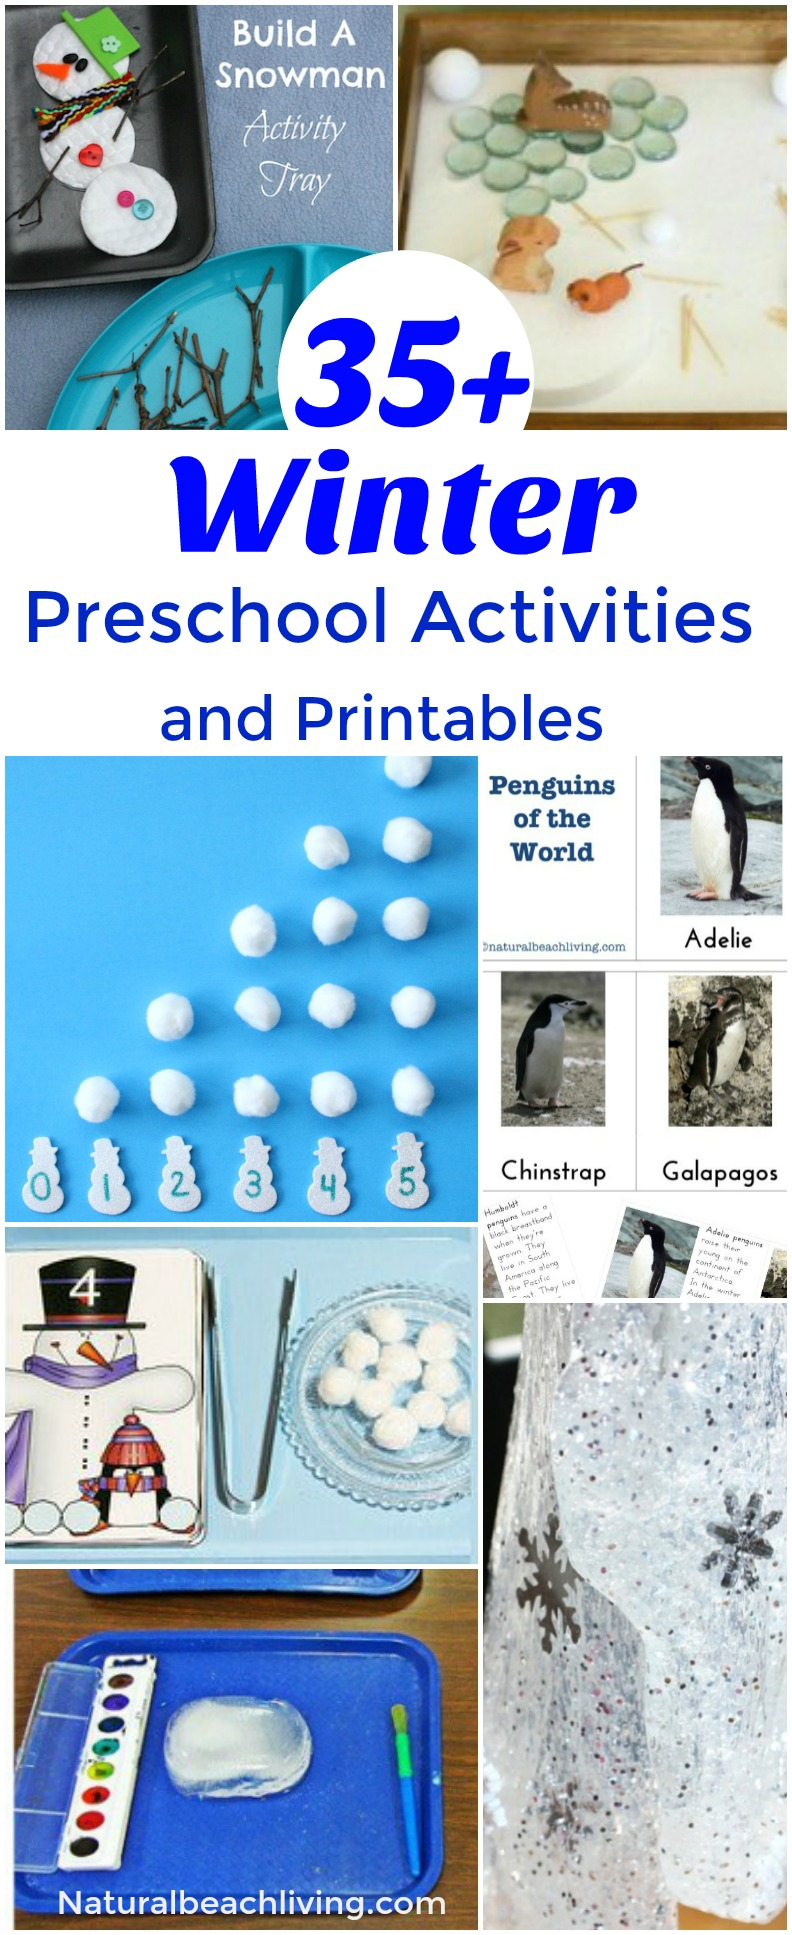 January Preschool Themes with Lesson Plans and Preschool Activities, These Fun January Preschool Activities explore winter, BEARS, Winter Animals, Nature, Penguins, Snow and so much more. Preschoolers will enjoy these fun hands on activities with monthly winter themes that include List of Themes for Preschool, January Holidays, Preschool Activities, and Preschool Lesson Plans for the Year